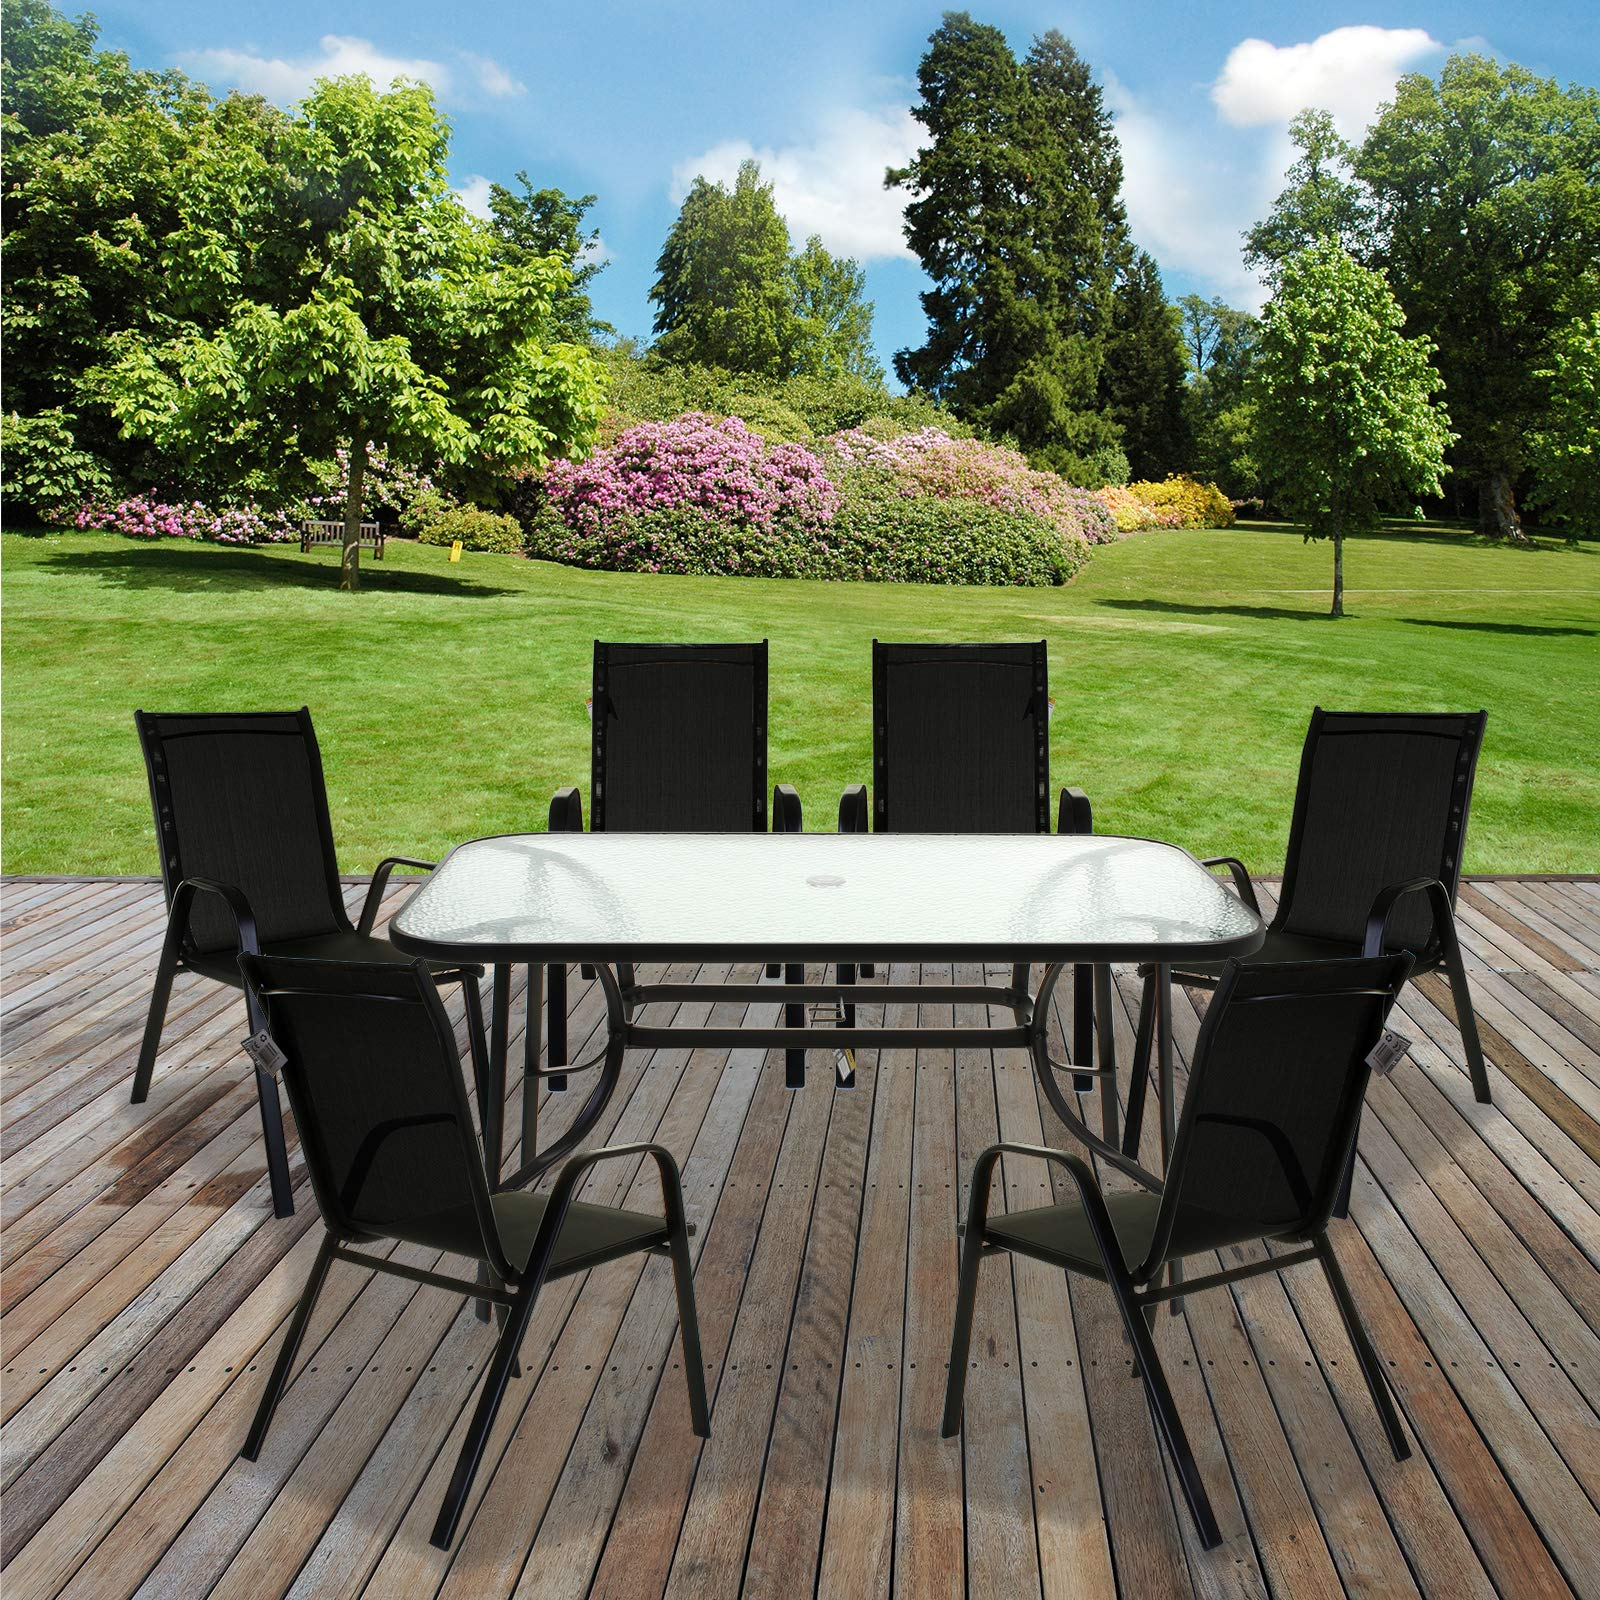 Marko Outdoor Garden Furniture Set Patio Outdoor Rectangular Glass Table  4/6 Chairs Parasol (6 Chairs + Table)- Buy Online in Pakistan at  desertcart.pk. ProductId : 171510316.